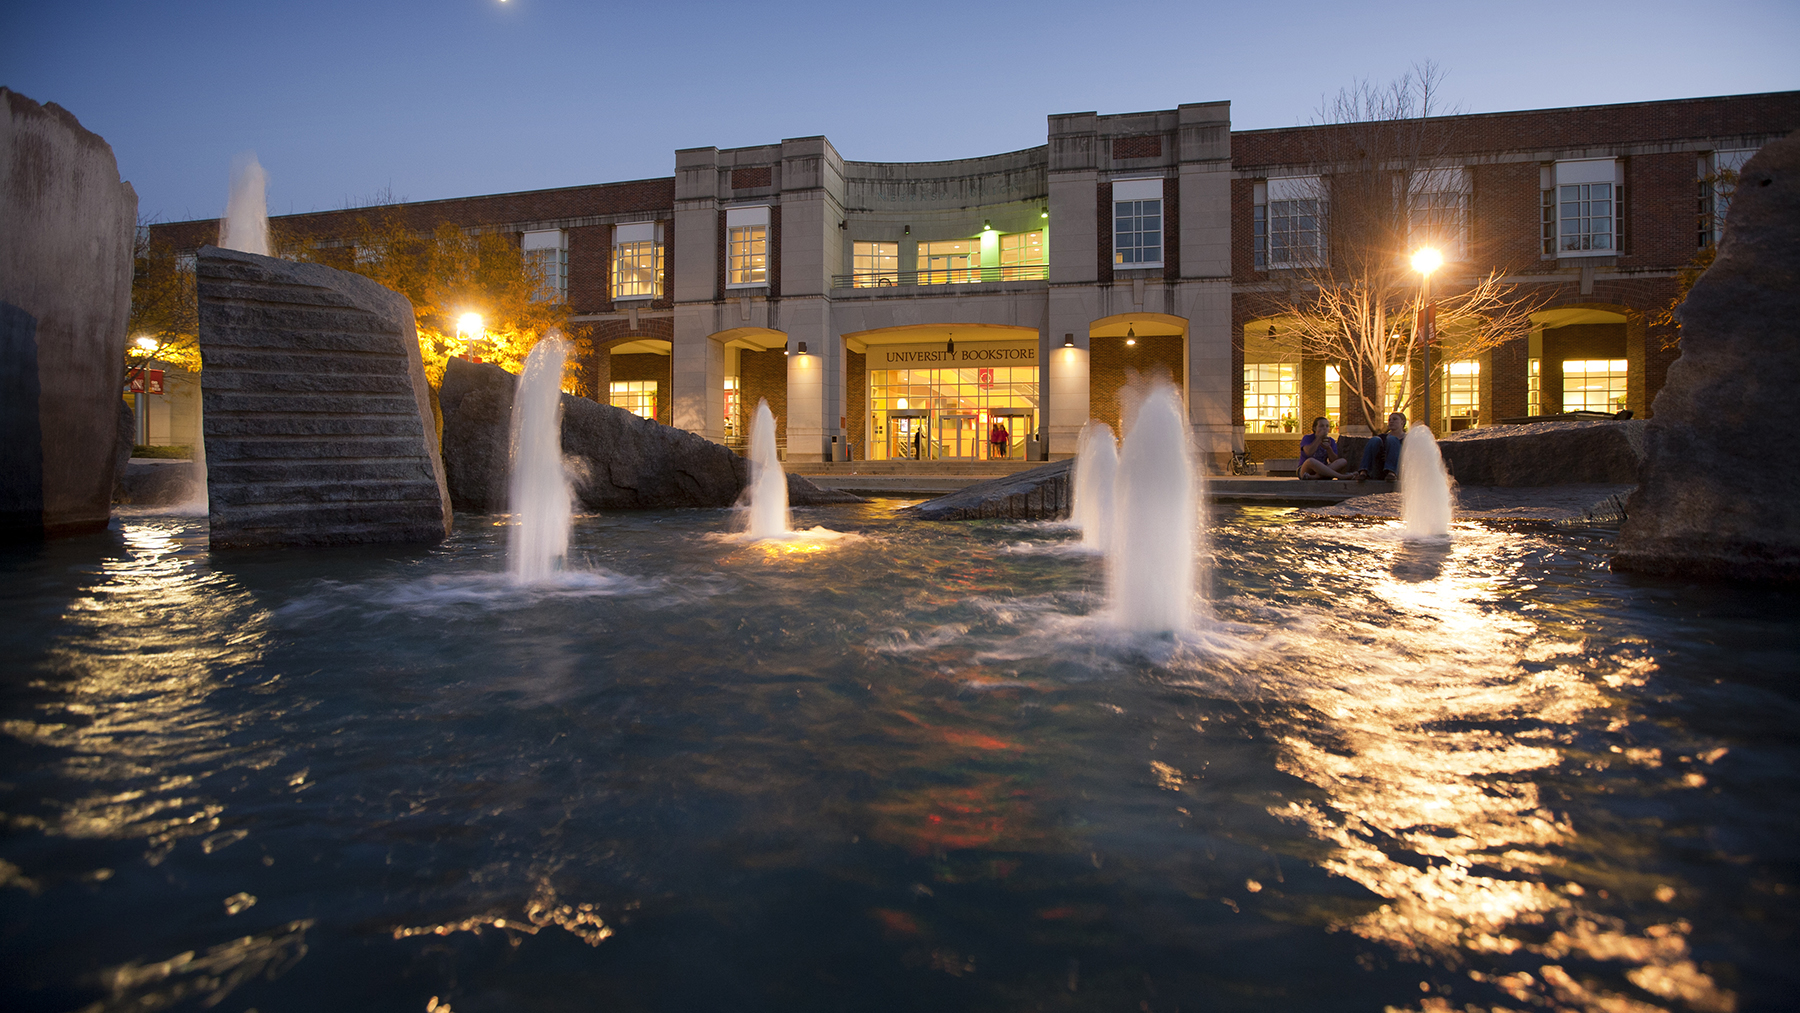 There are plenty of entertaining late-night options to experience on campus.